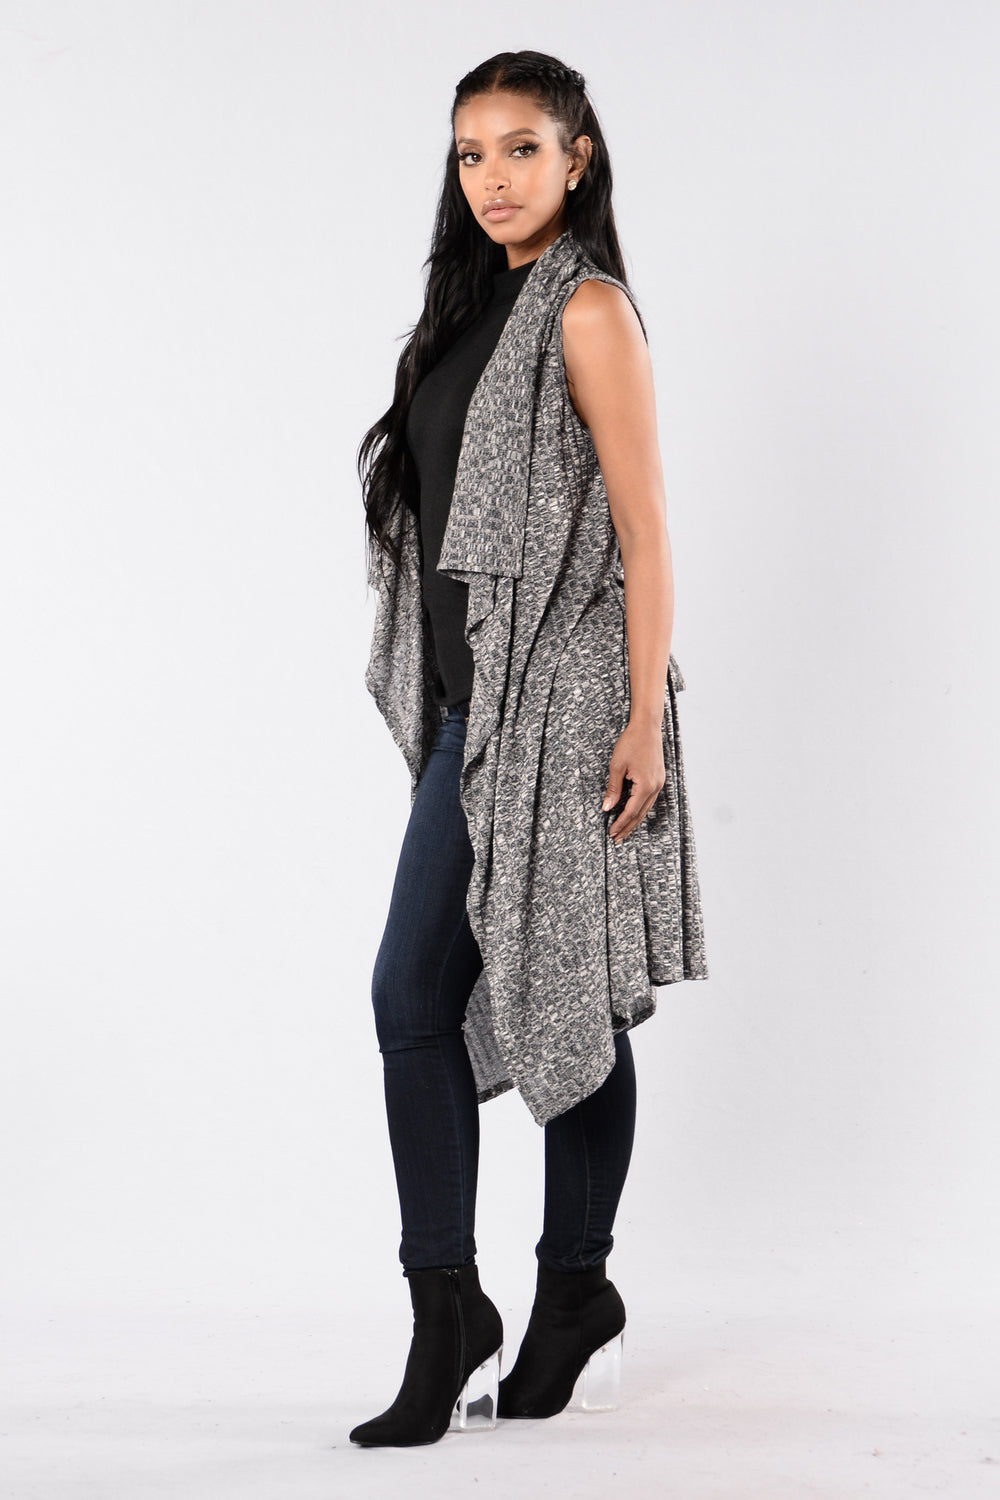 Drift Away Duster - Grey